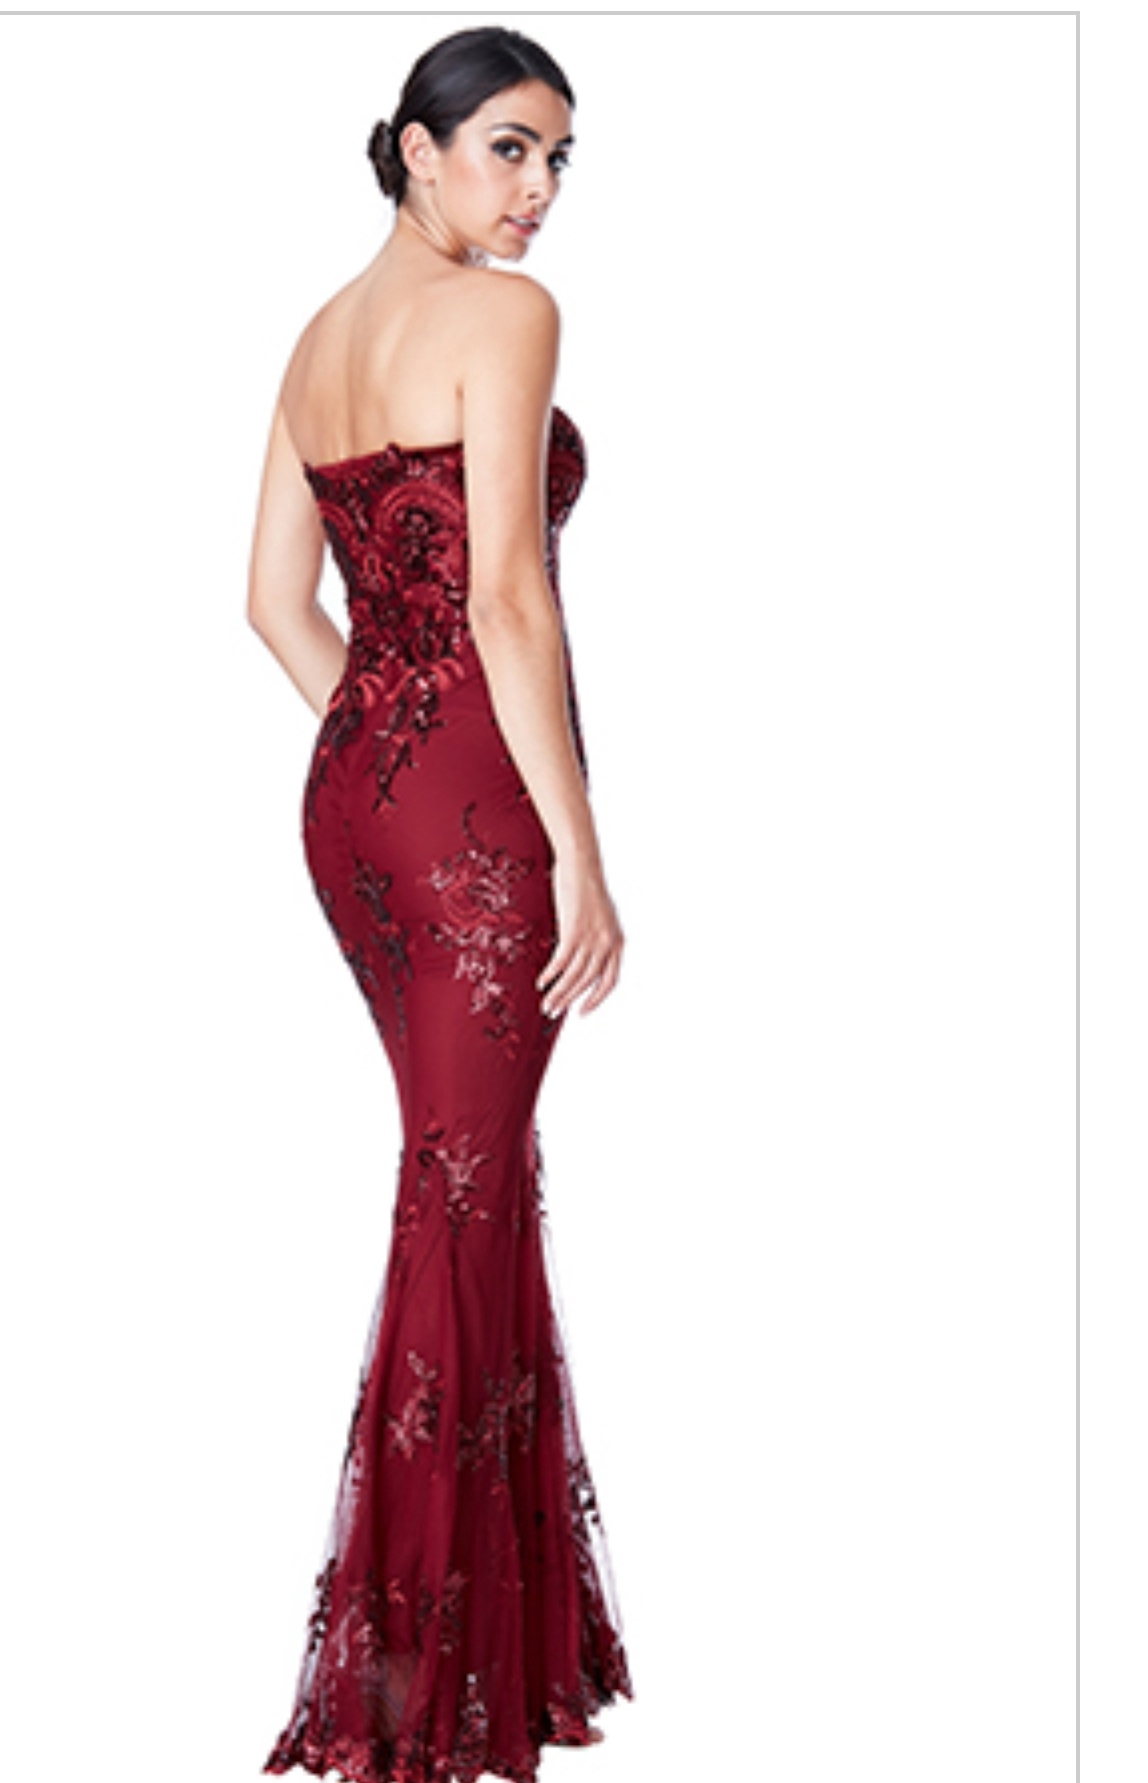 7f9cb5ffefe7 Floor Length Gown - Wine Strapless Chiffon Sequined Accent Maxi Dress